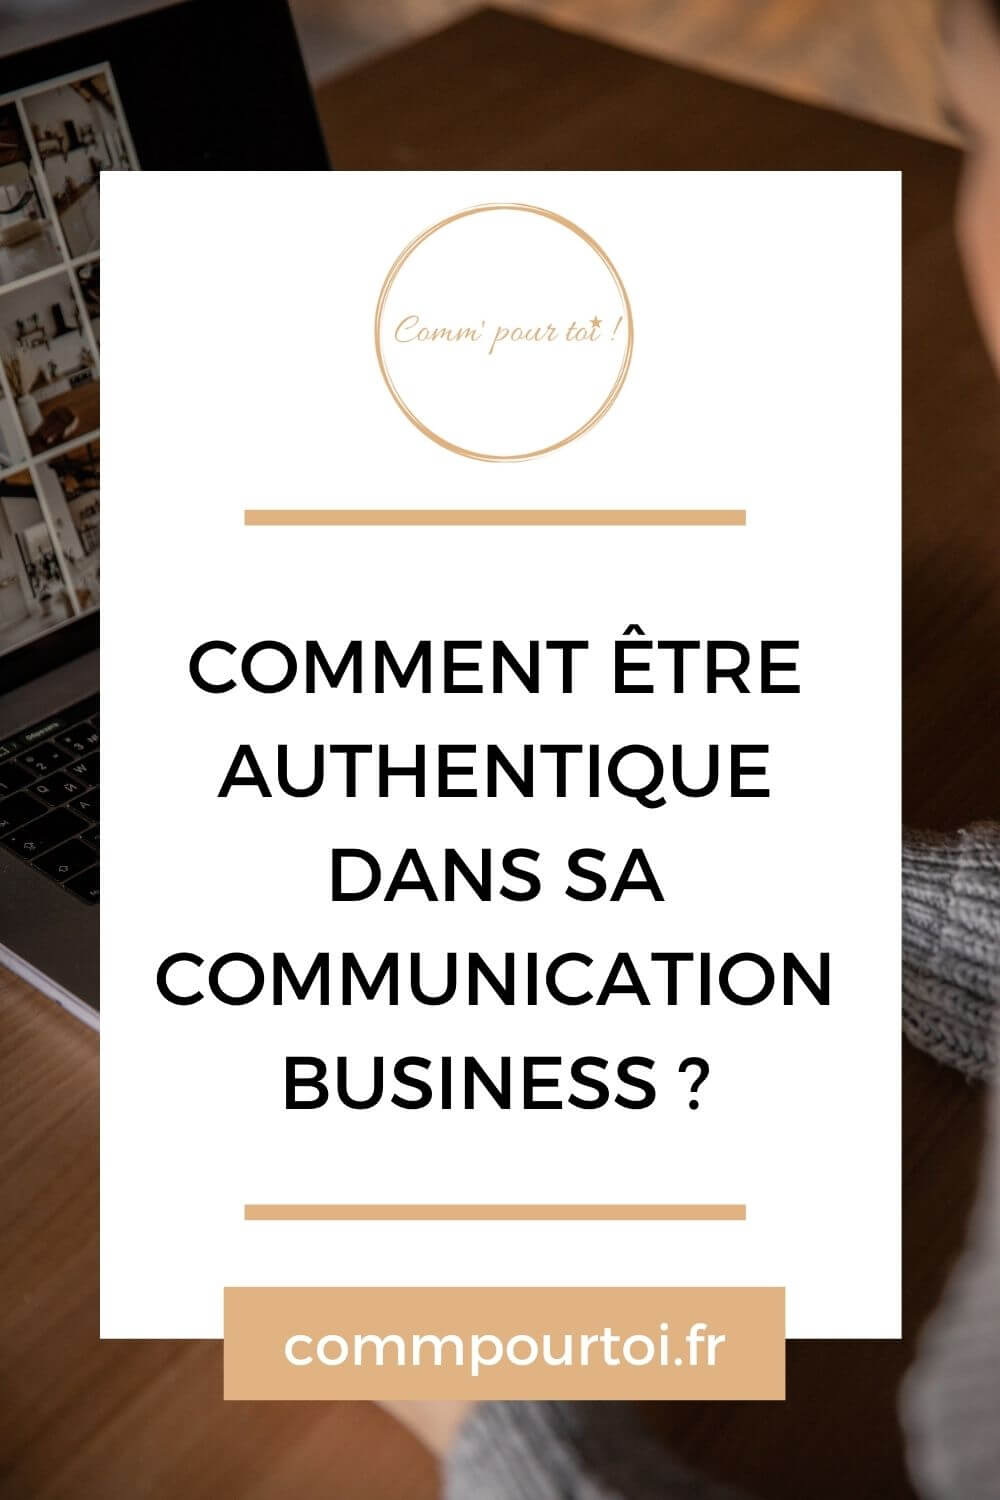 Être authentique dans sa communication business